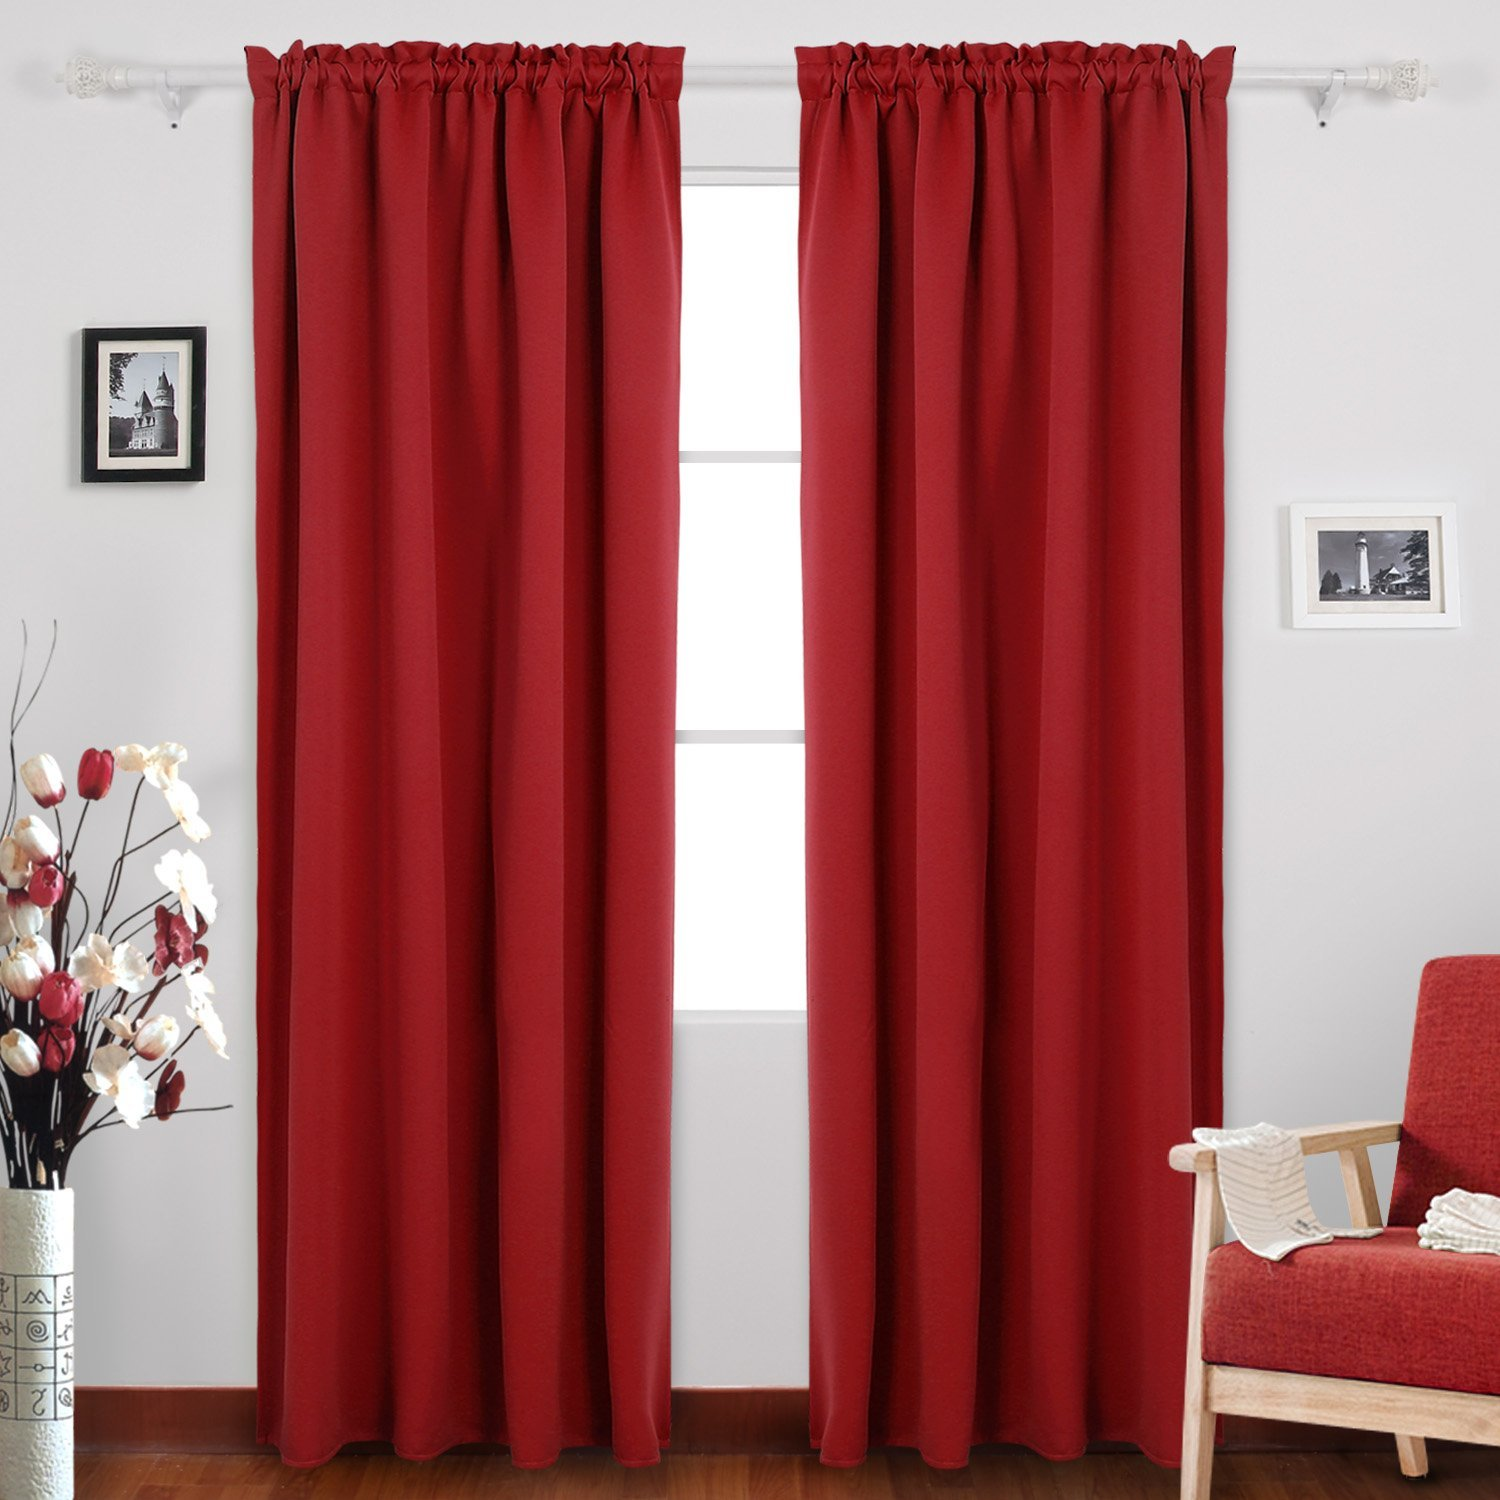 Get Quotations Deconovo True Red Blackout Curtains Window Room Darkening Rod Pocket For S